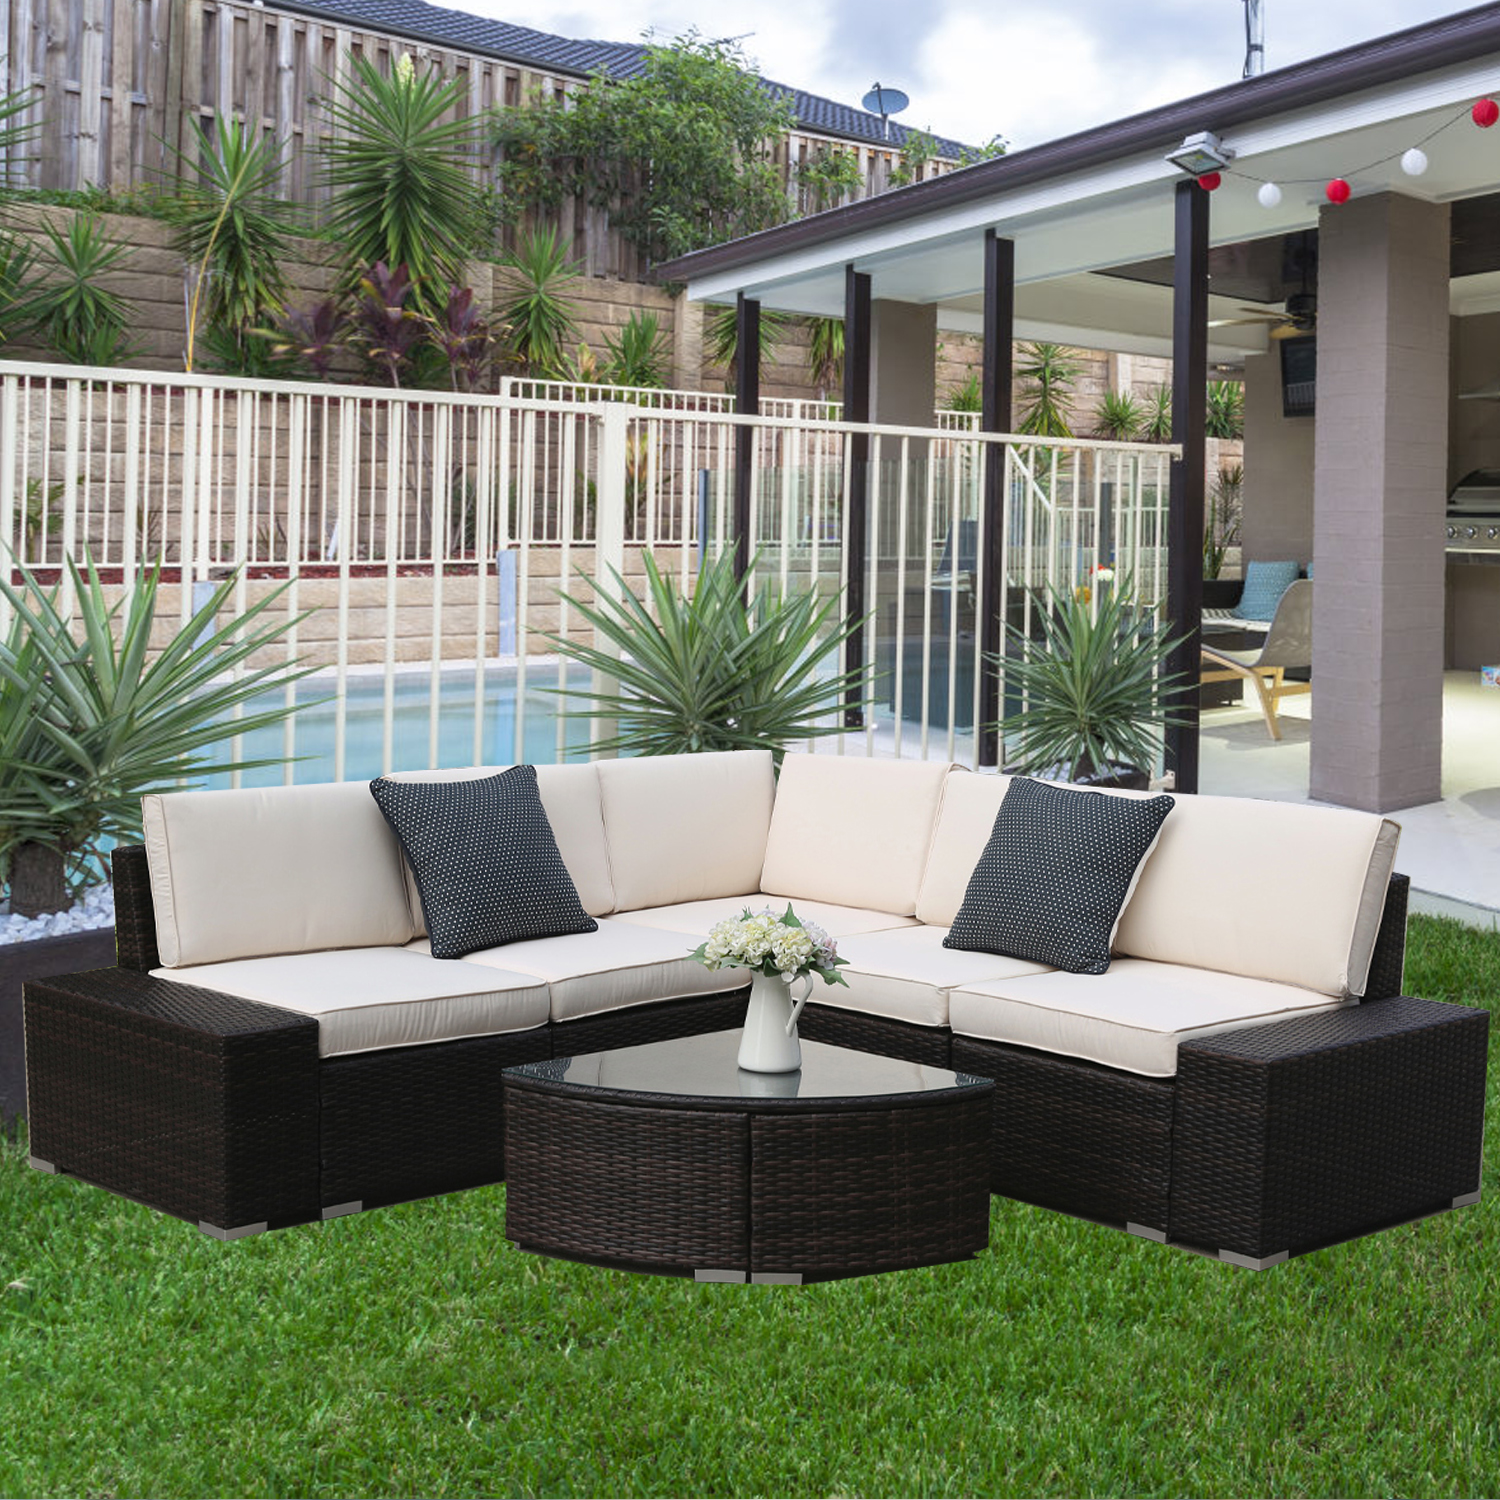 uhomepro outdoor sectional sofa sets 6 piece patio wicker patio furniture set patio sectional with cushions coffee table patio conversation sets